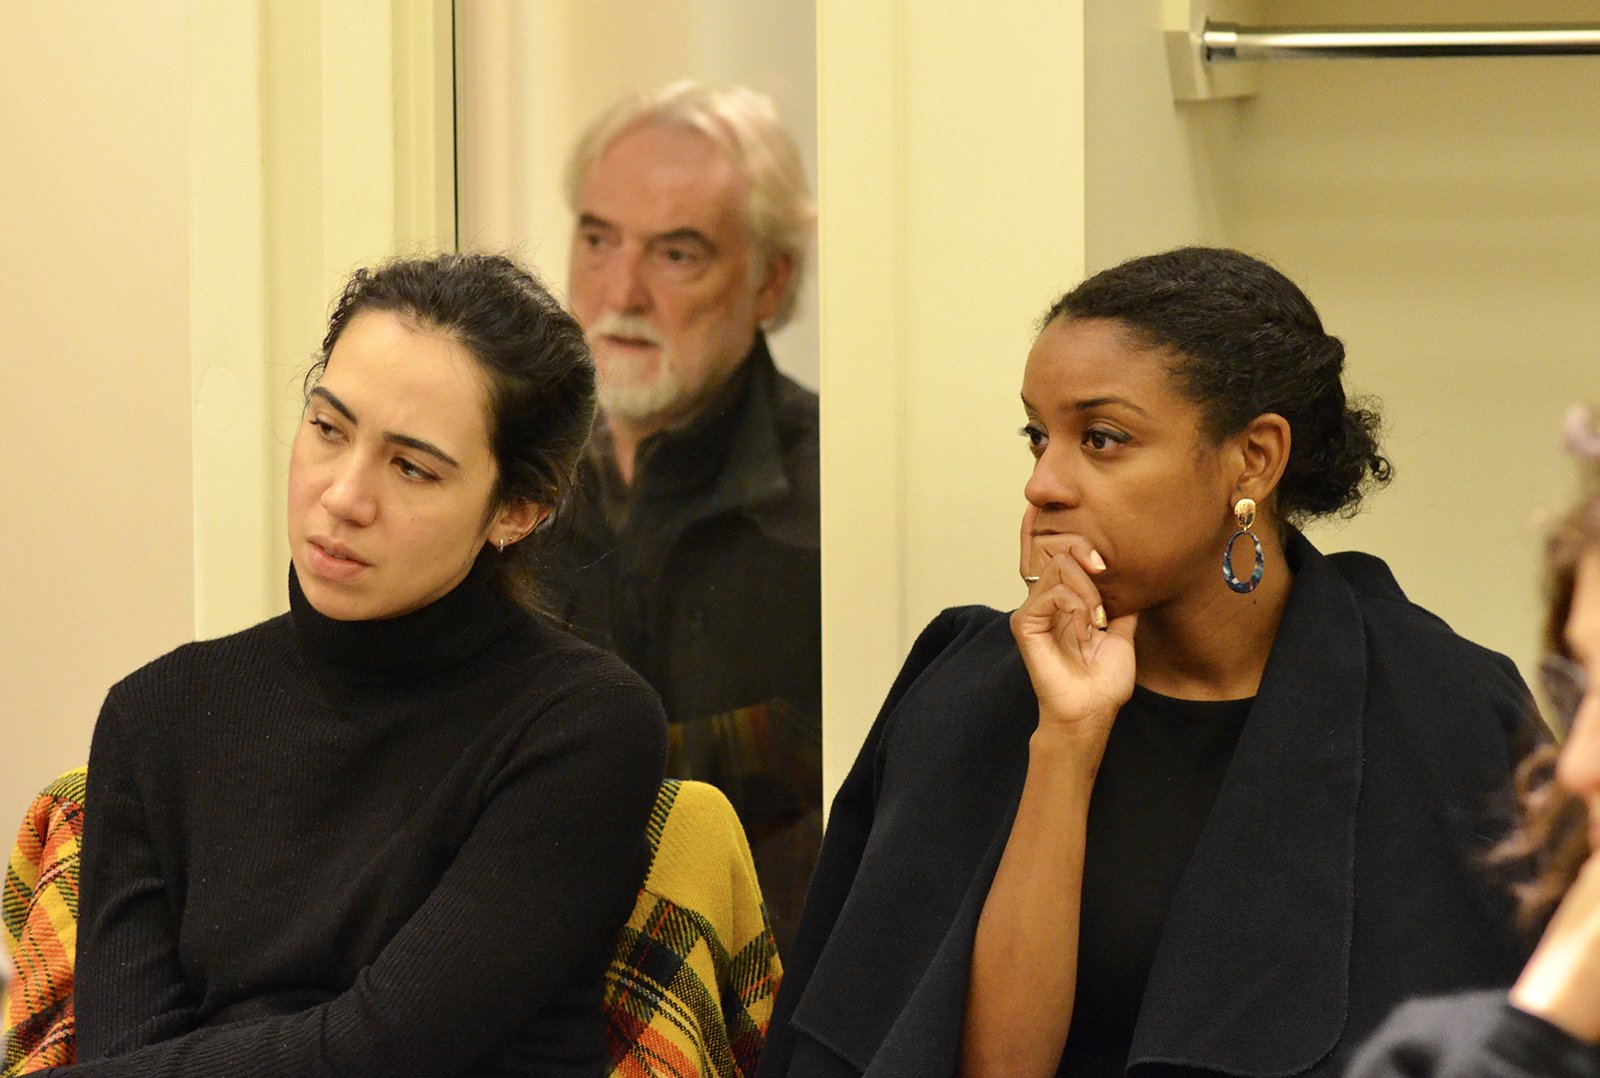 Attendees listen to the discussion.